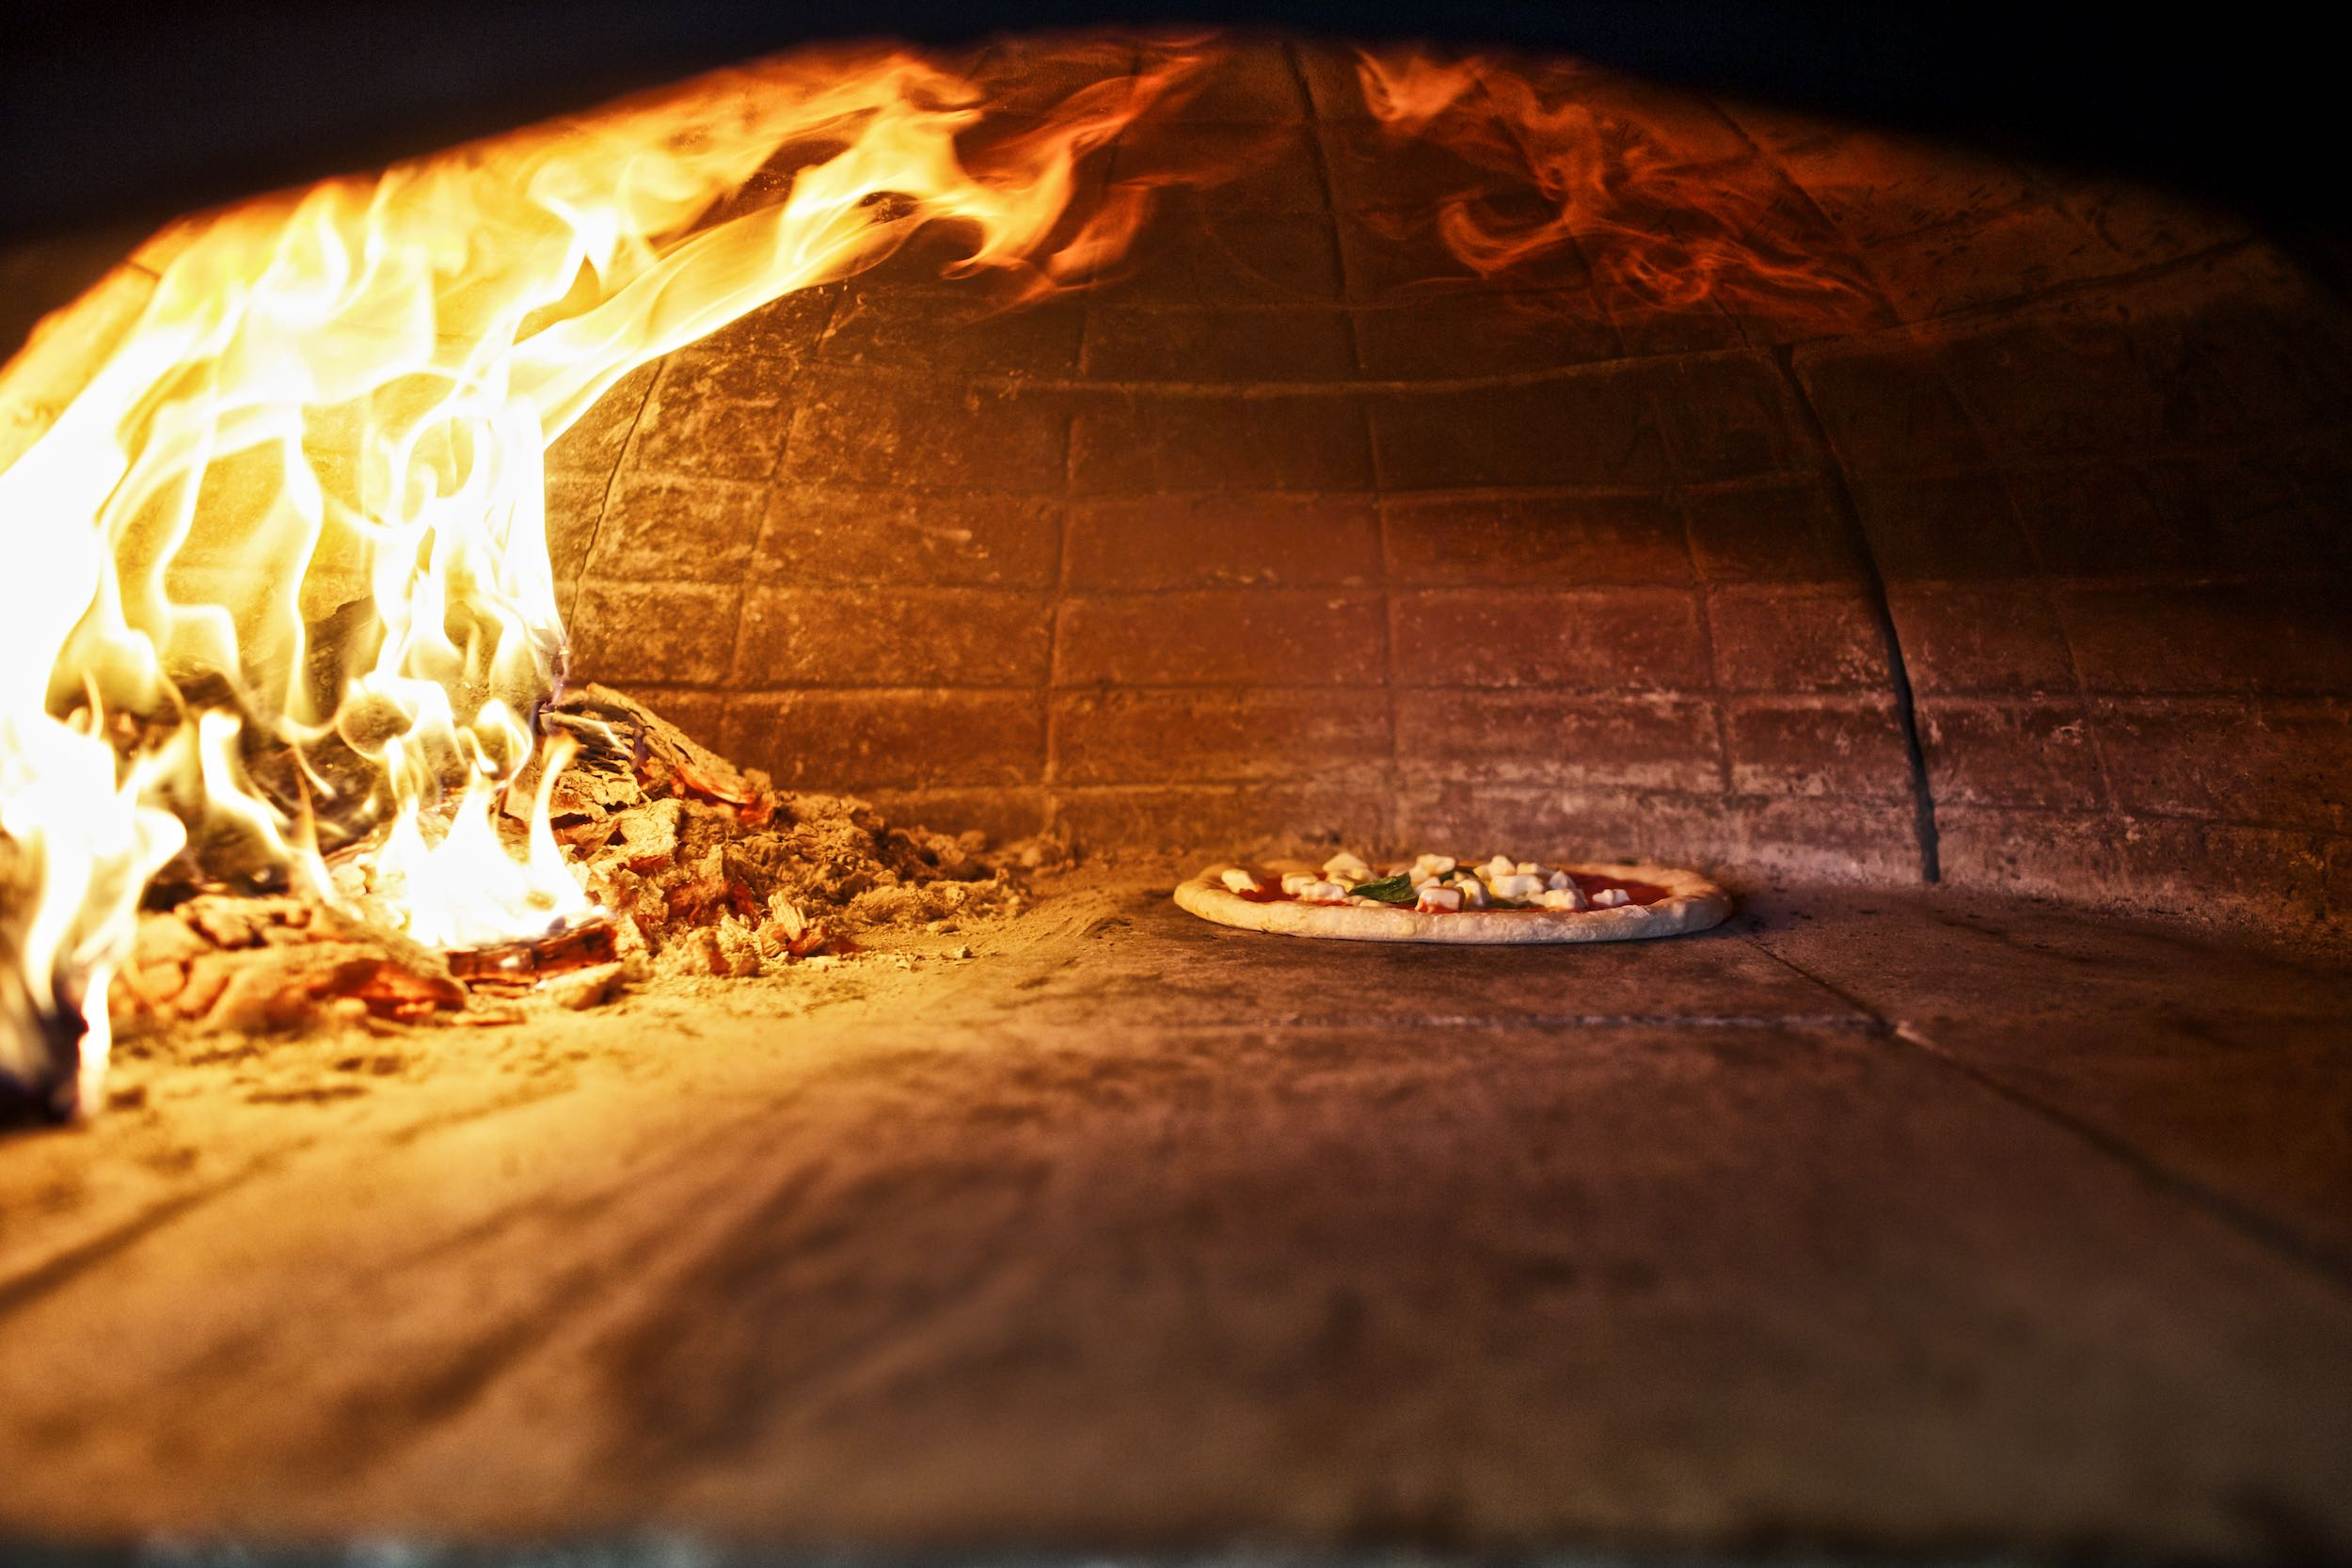 Jody Horton Photography - Pizza cooking in domed oven next to large flames.